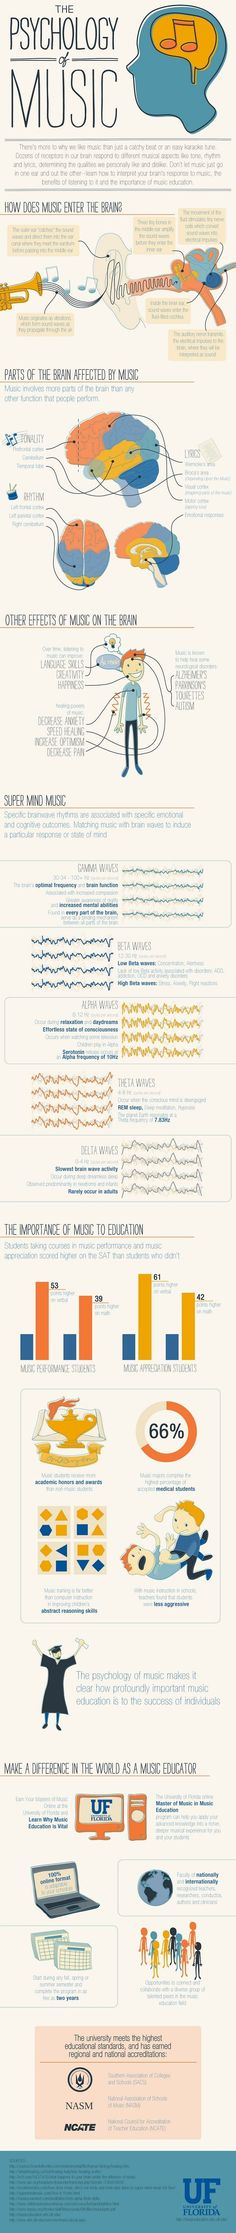 The psychology of music #infographic